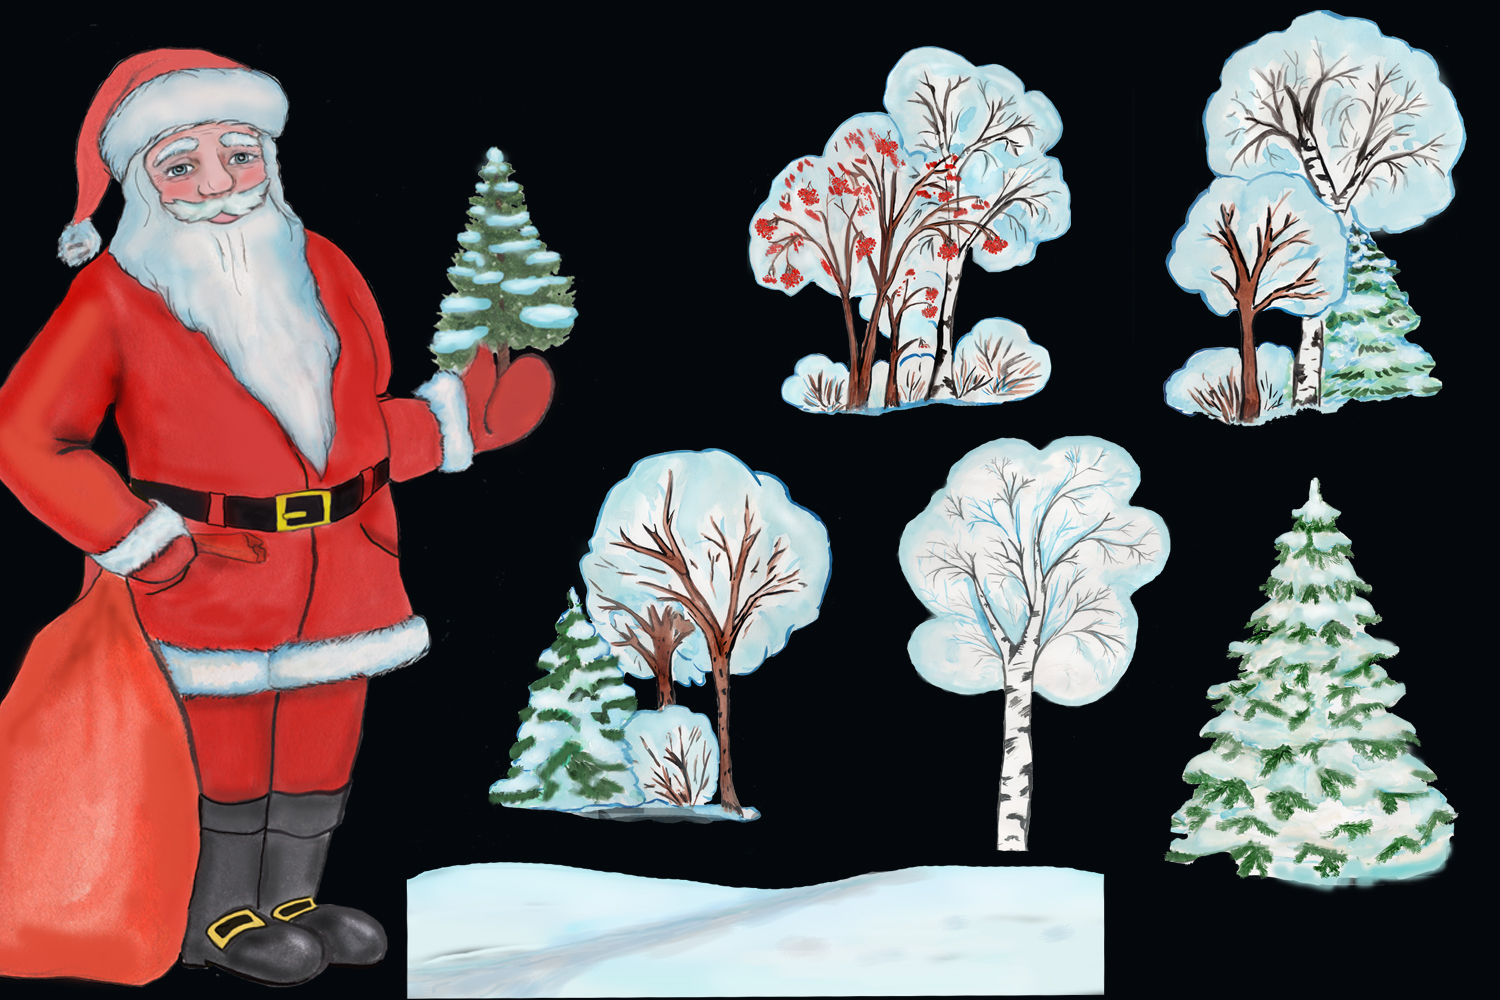 Christmas clipart, winter forest trees with Santa Claus example image 3